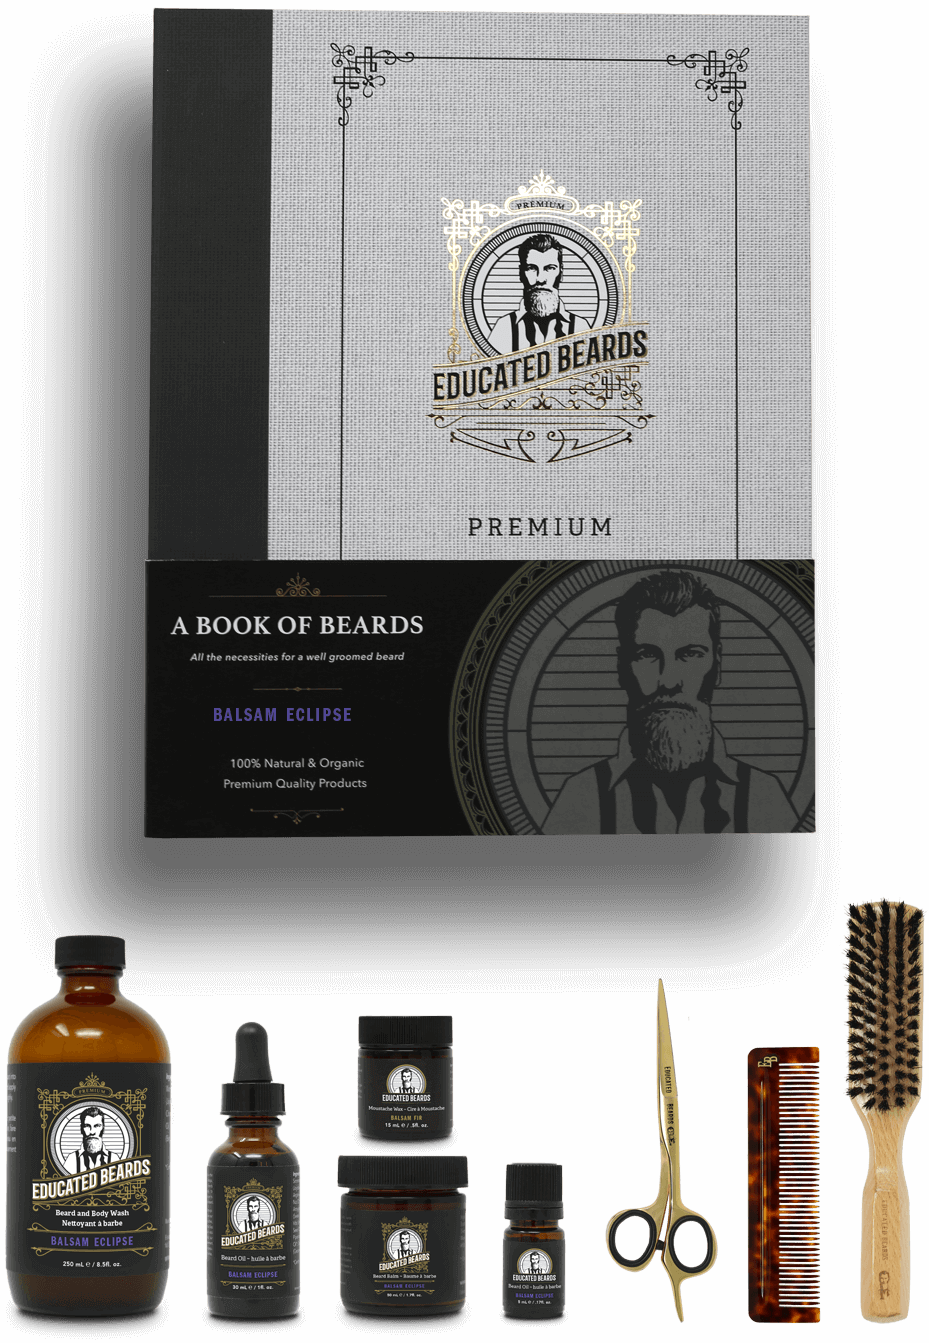 Balsam Eclipse premium beard grooming kit